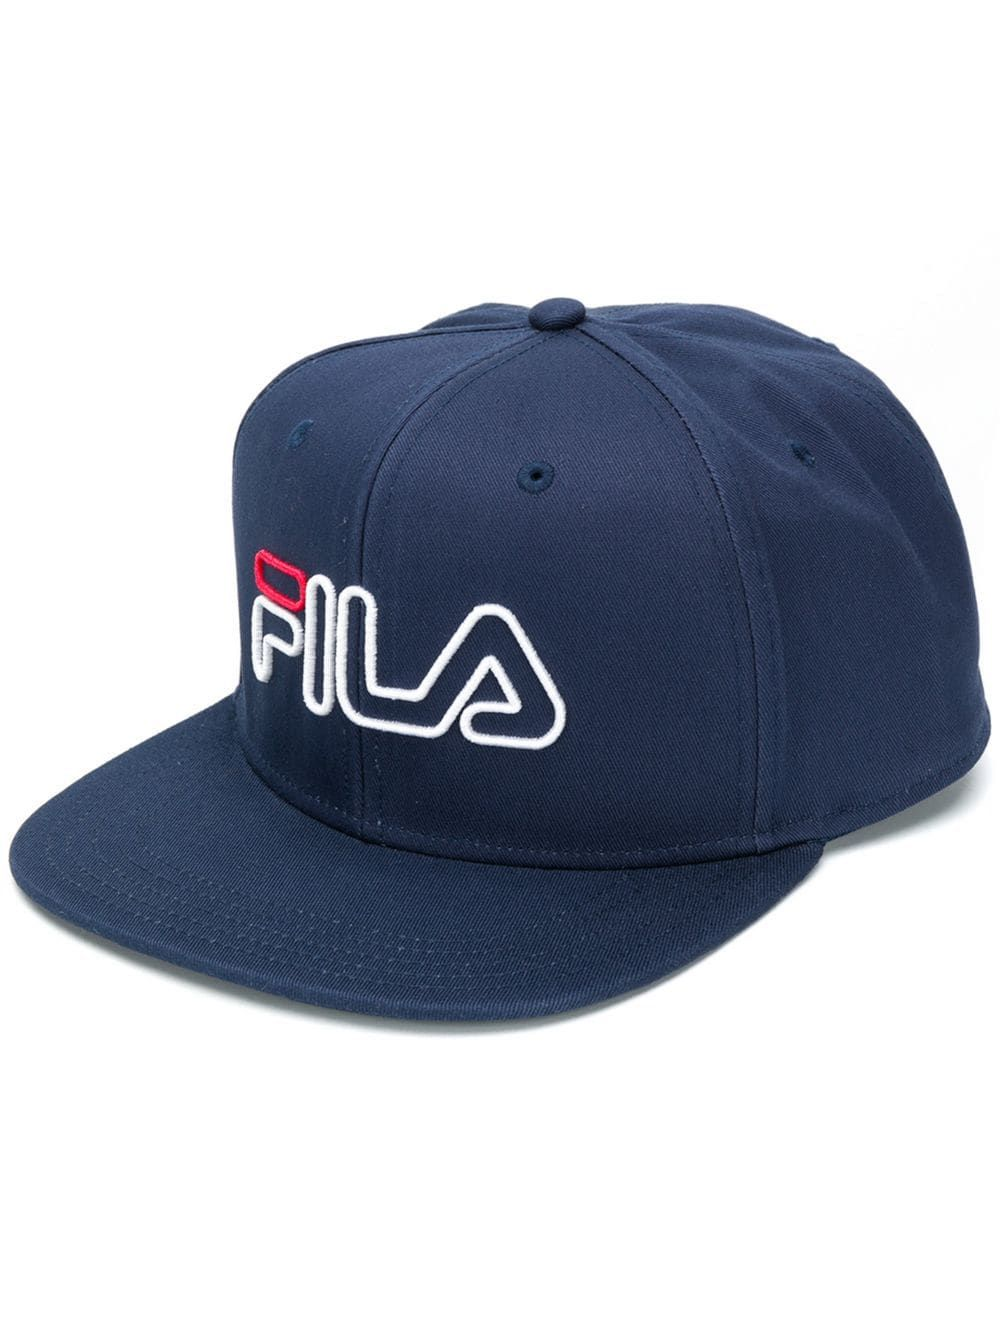 3ed3da6b183a4b Fila embroidered logo baseball cap - Blue in 2019 | Products ...